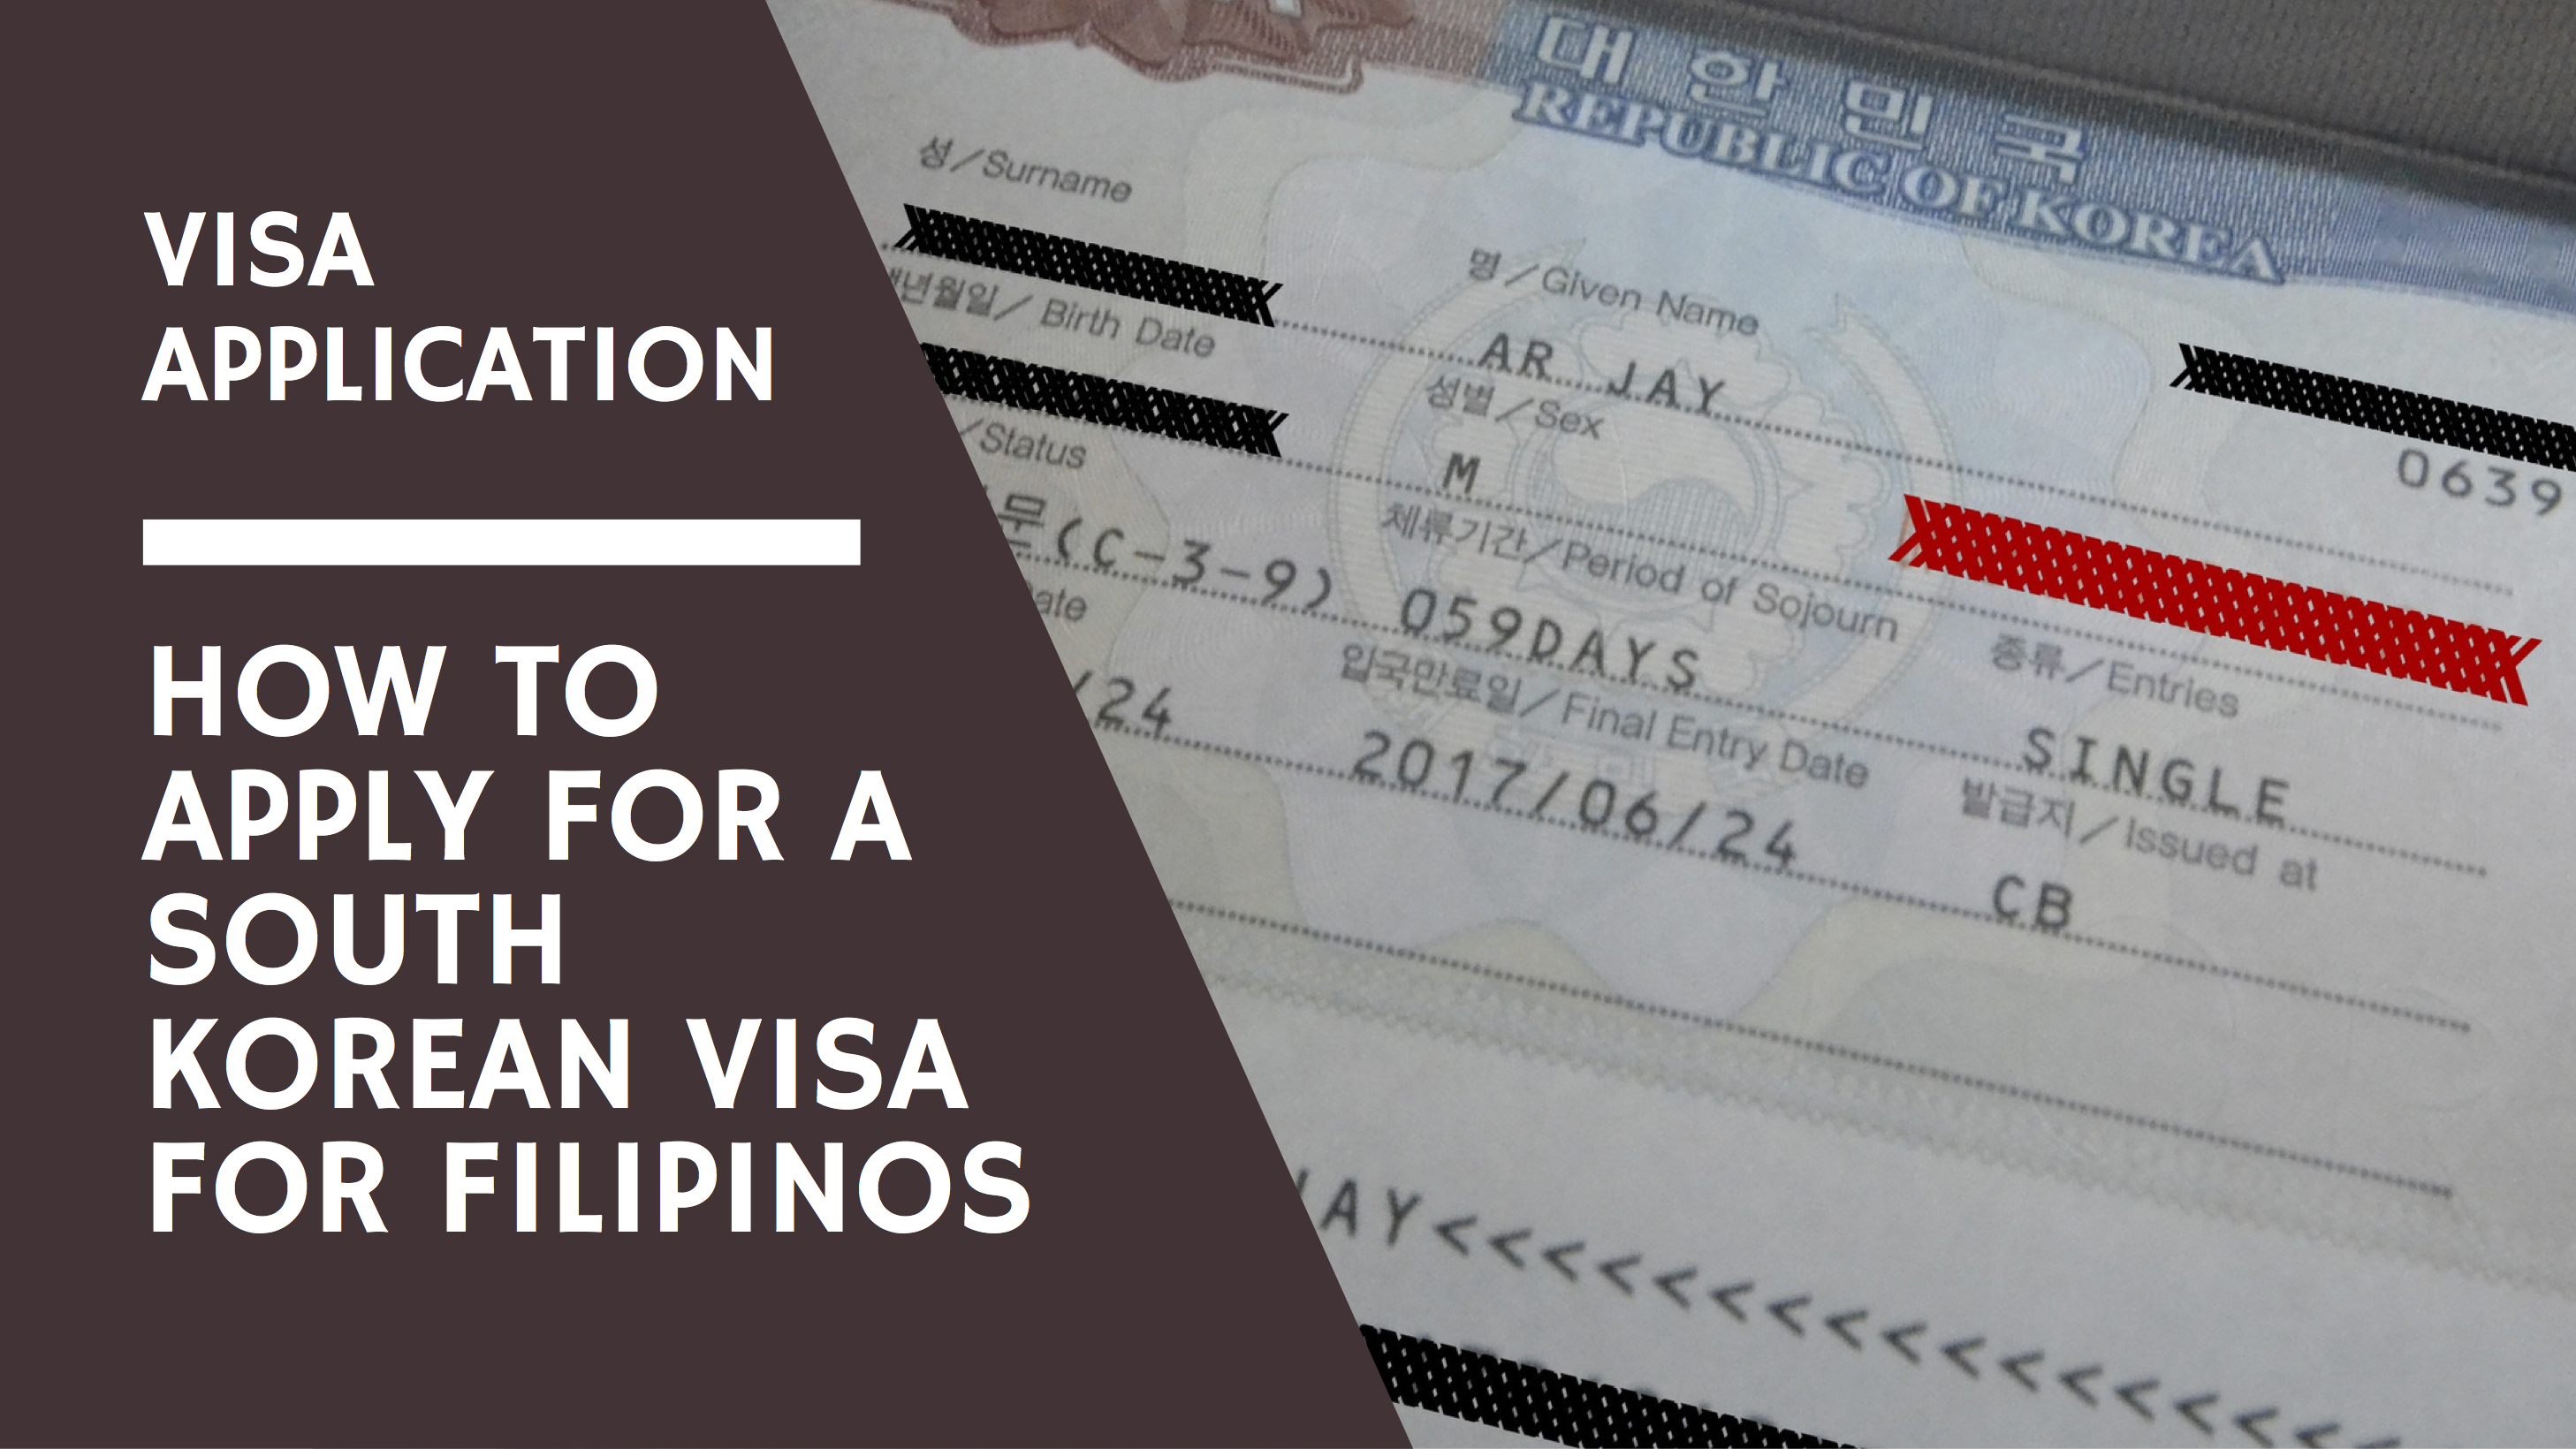 Visa Application How To Apply For A South Korean Visa For Filipino